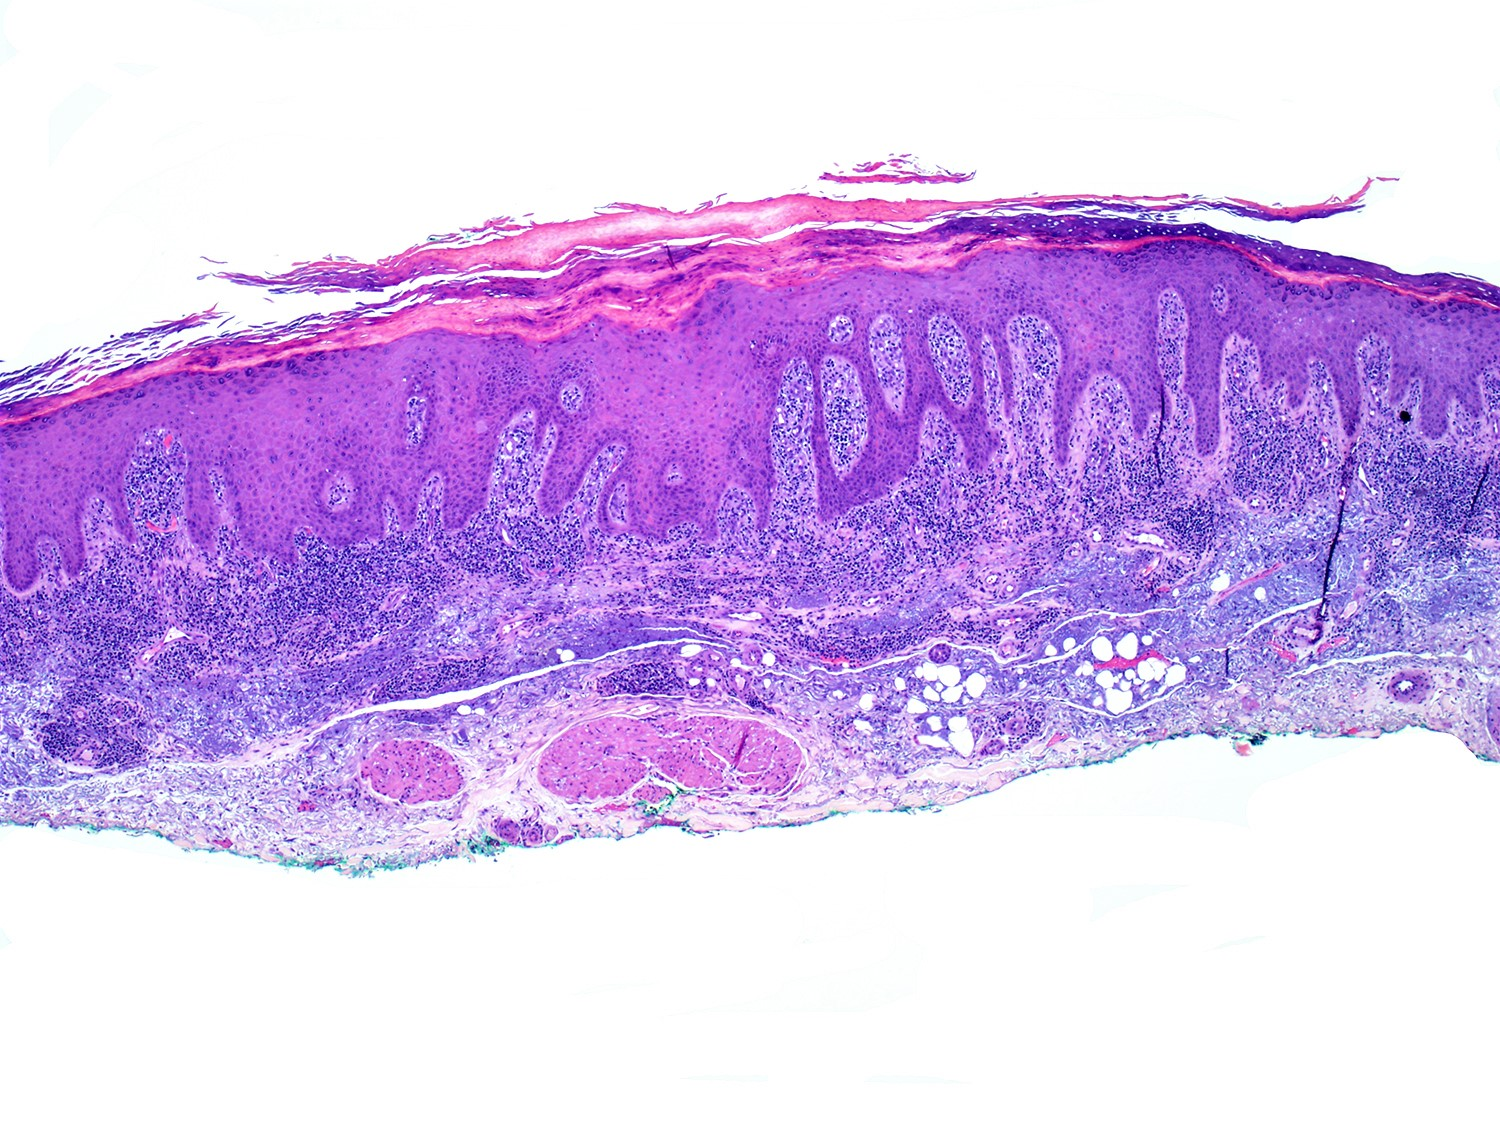 Epidermotropic and lichenoid lymphoid infiltrate